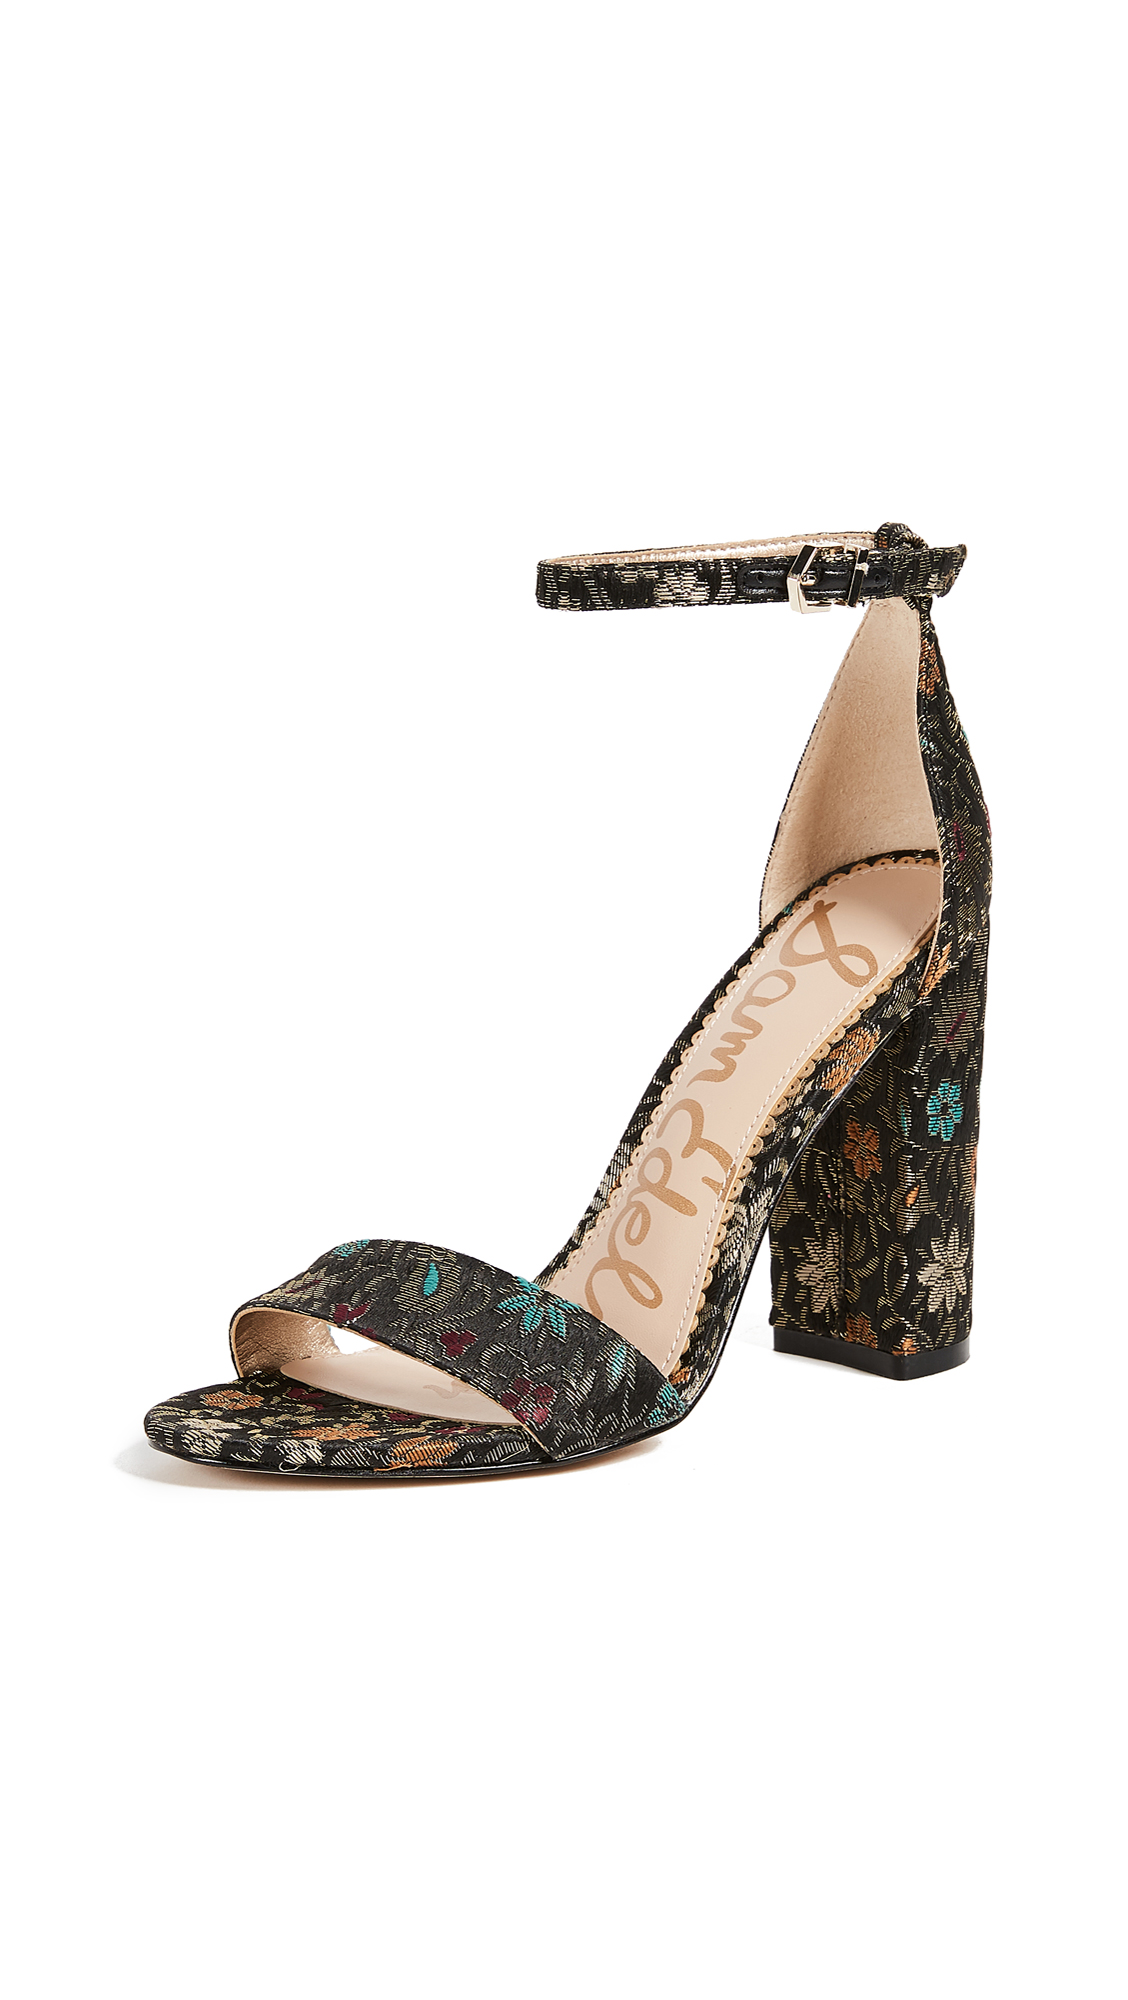 Sam Edelman Yaro Sandals - Black Multi